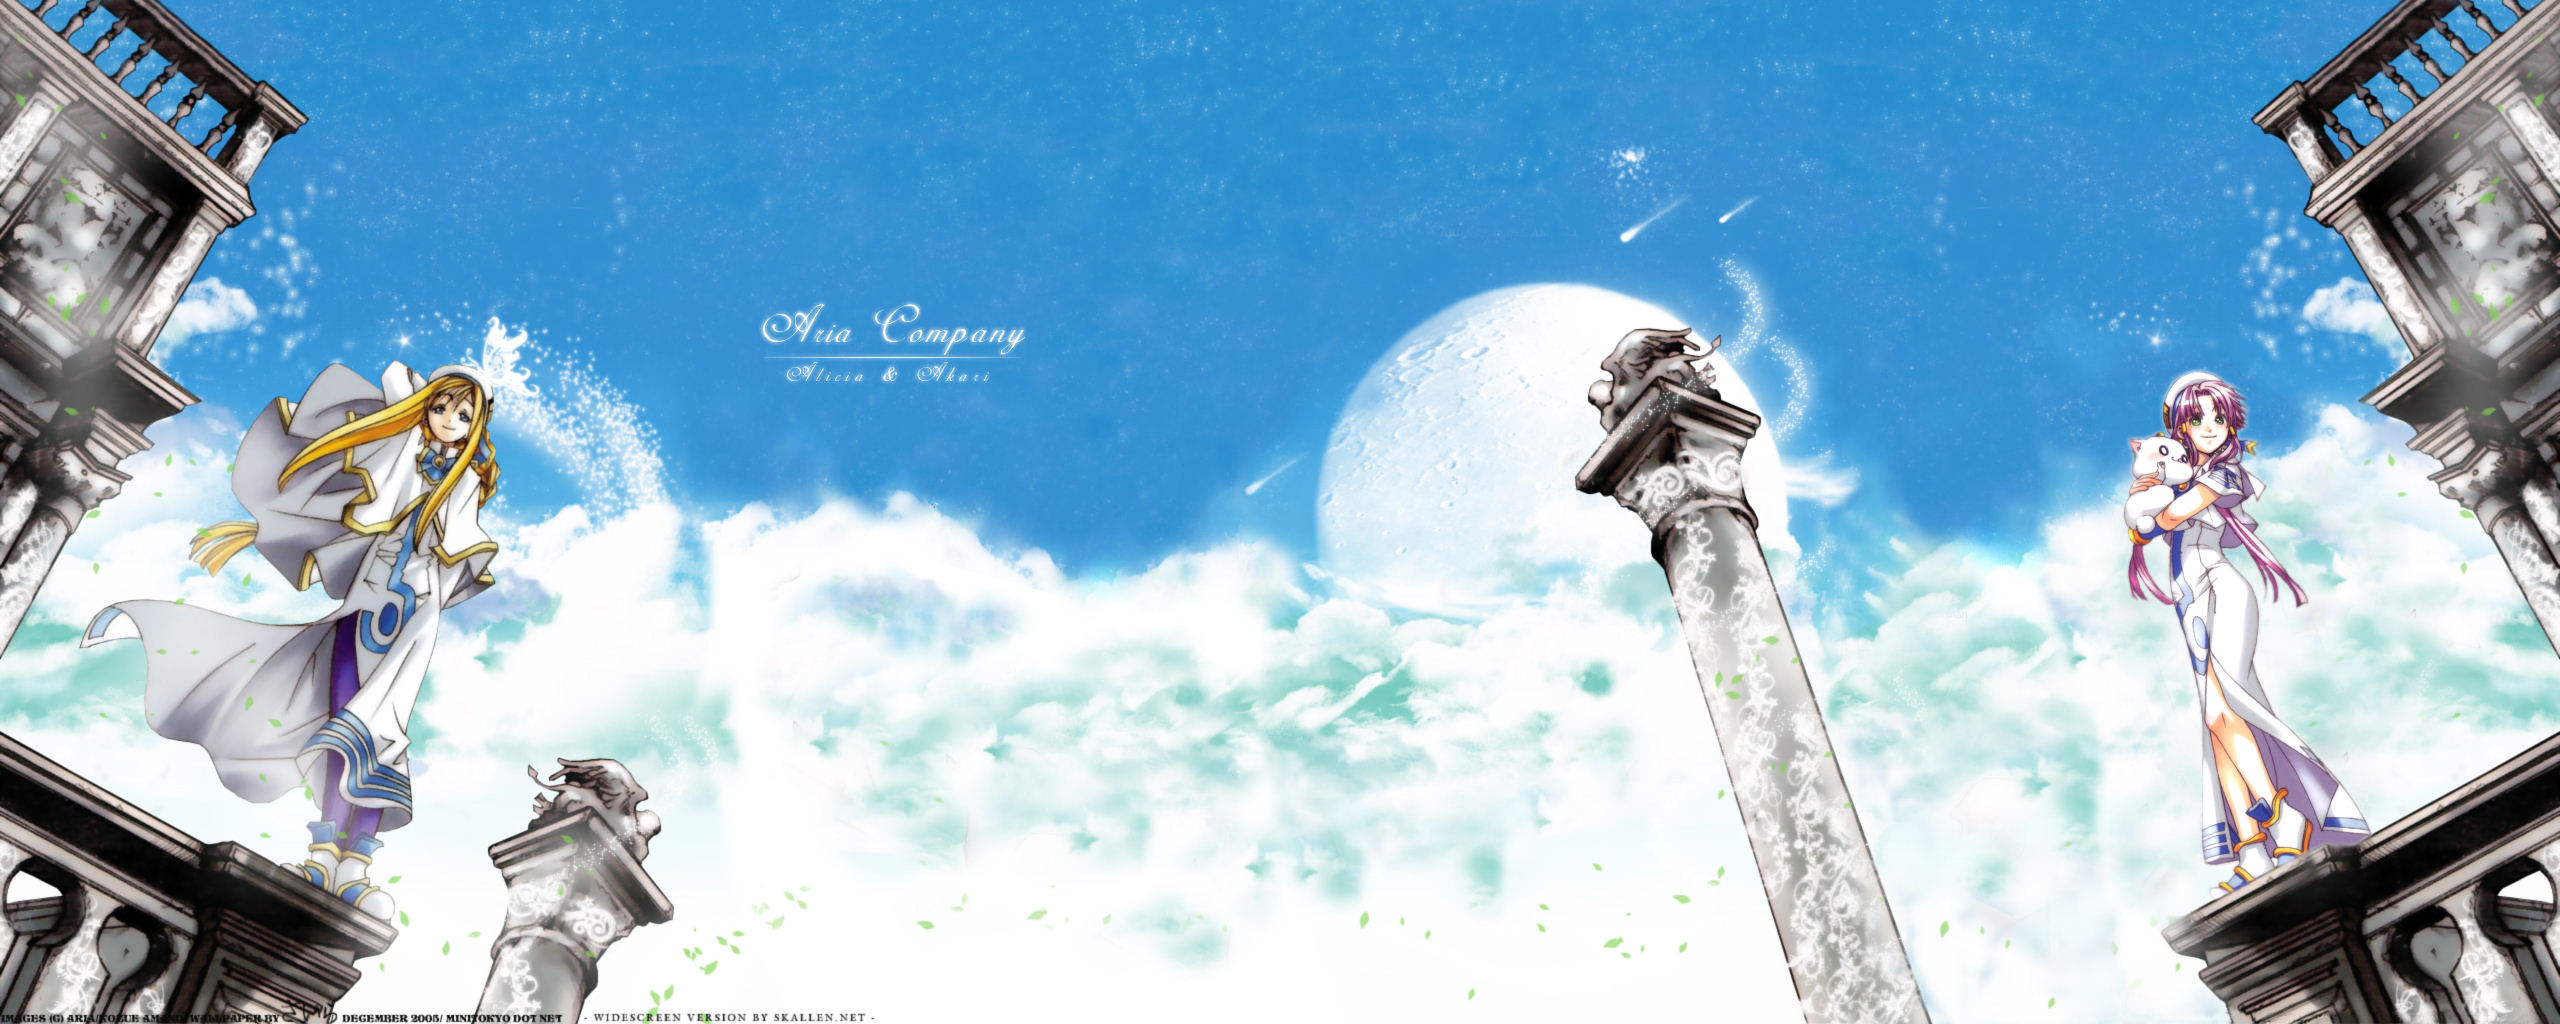 Dual Monitor Backgrounds Dual Screen Wallpaper Anime Aria Company 2560x1024